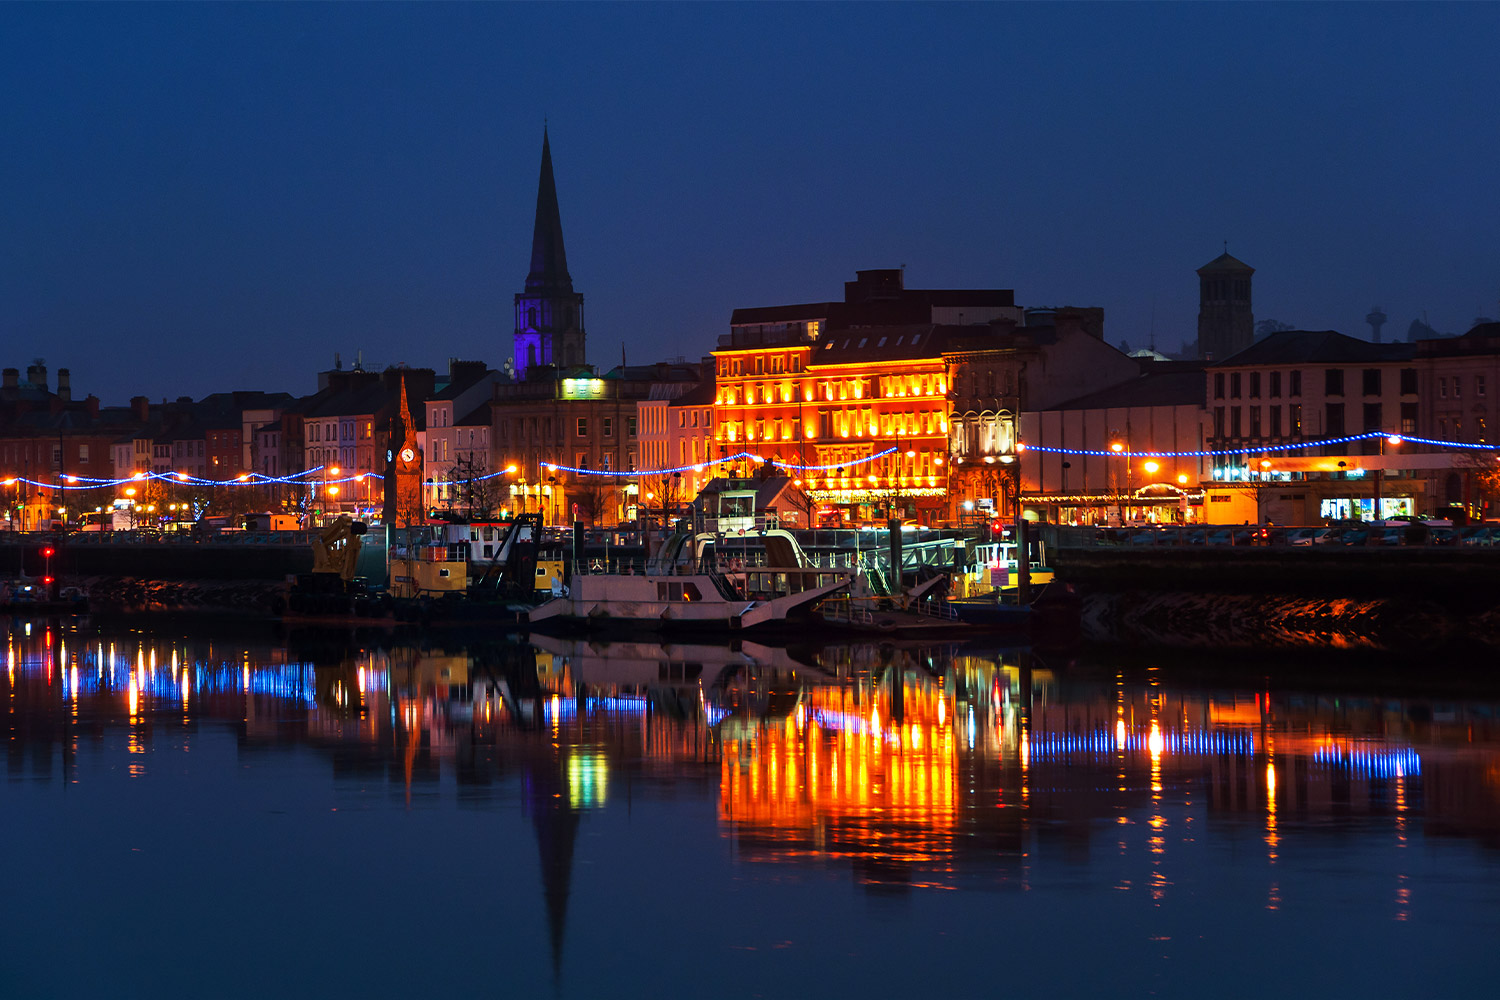 Waterford at Night, Ireland